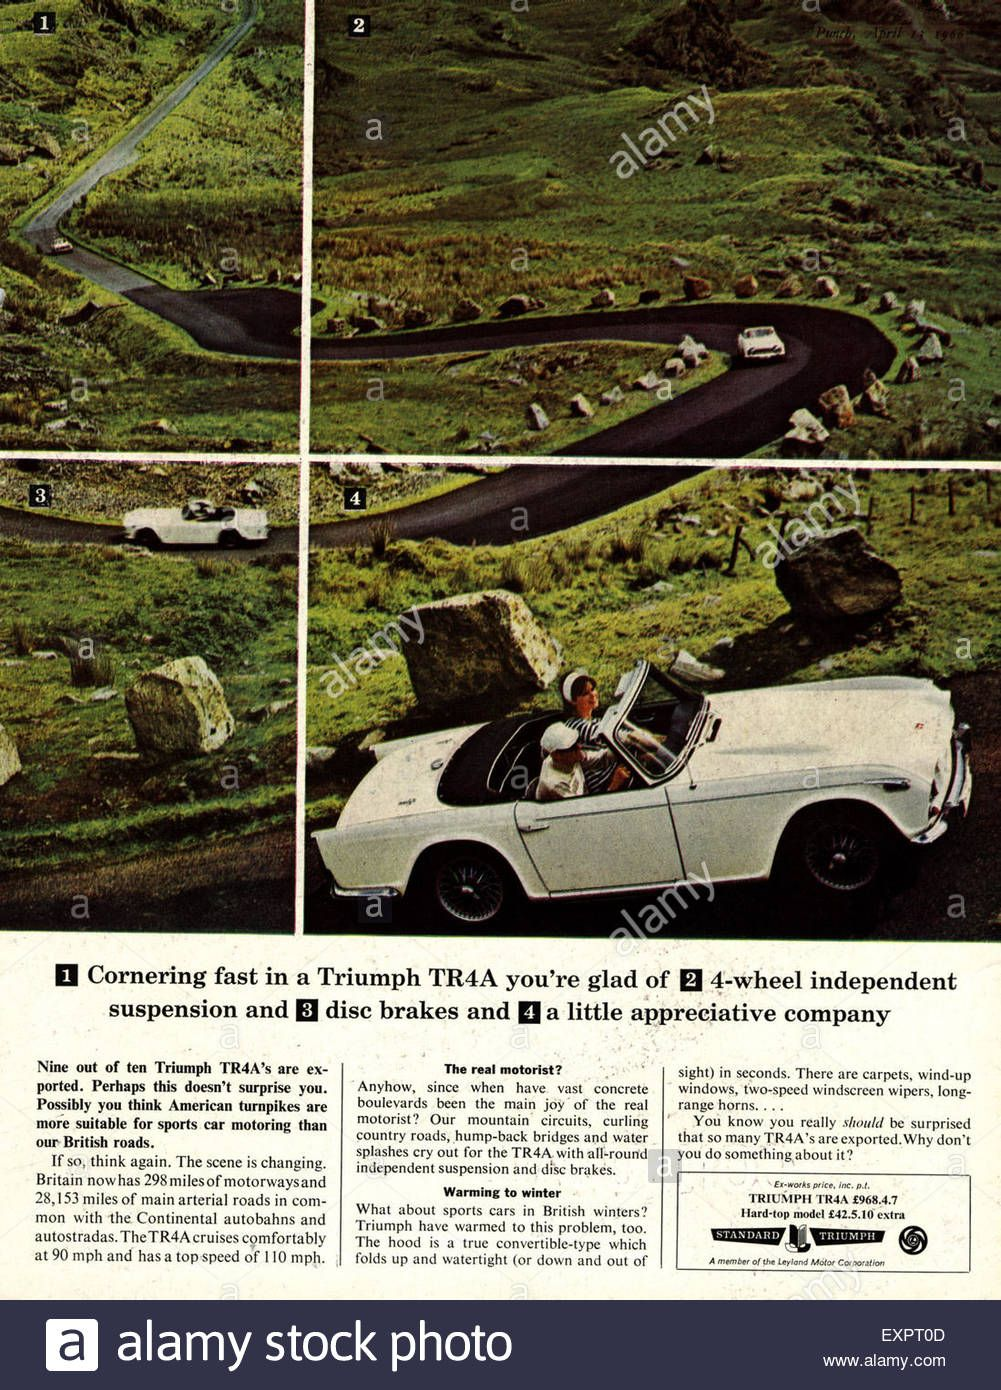 Download This Stock Image 1960s Uk Triumph Tr4 Cars Magazine Advert